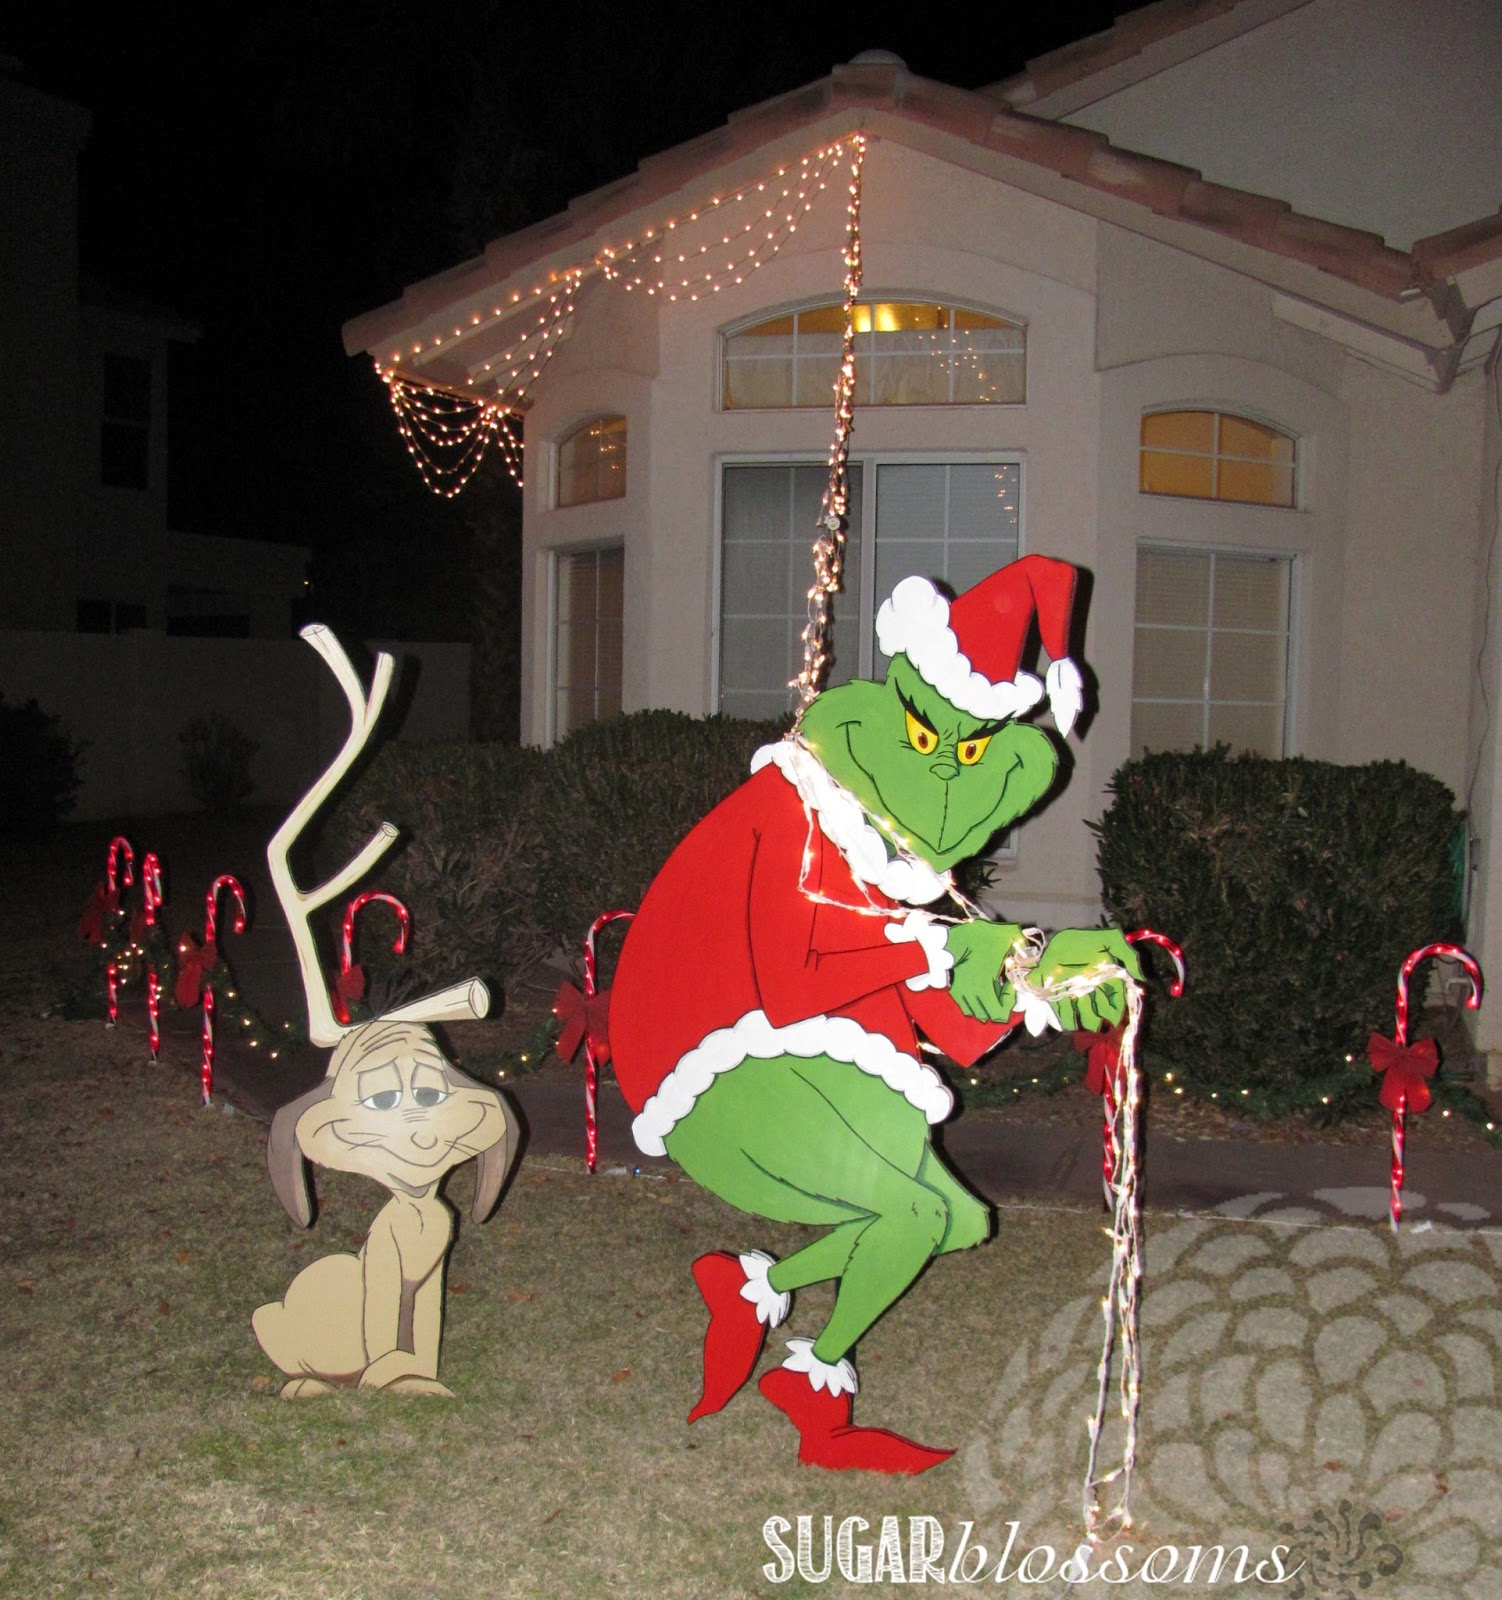 Grinch Christmas Lights Outdoor Rekindle Memories For The Whole Year Warisan Lighting